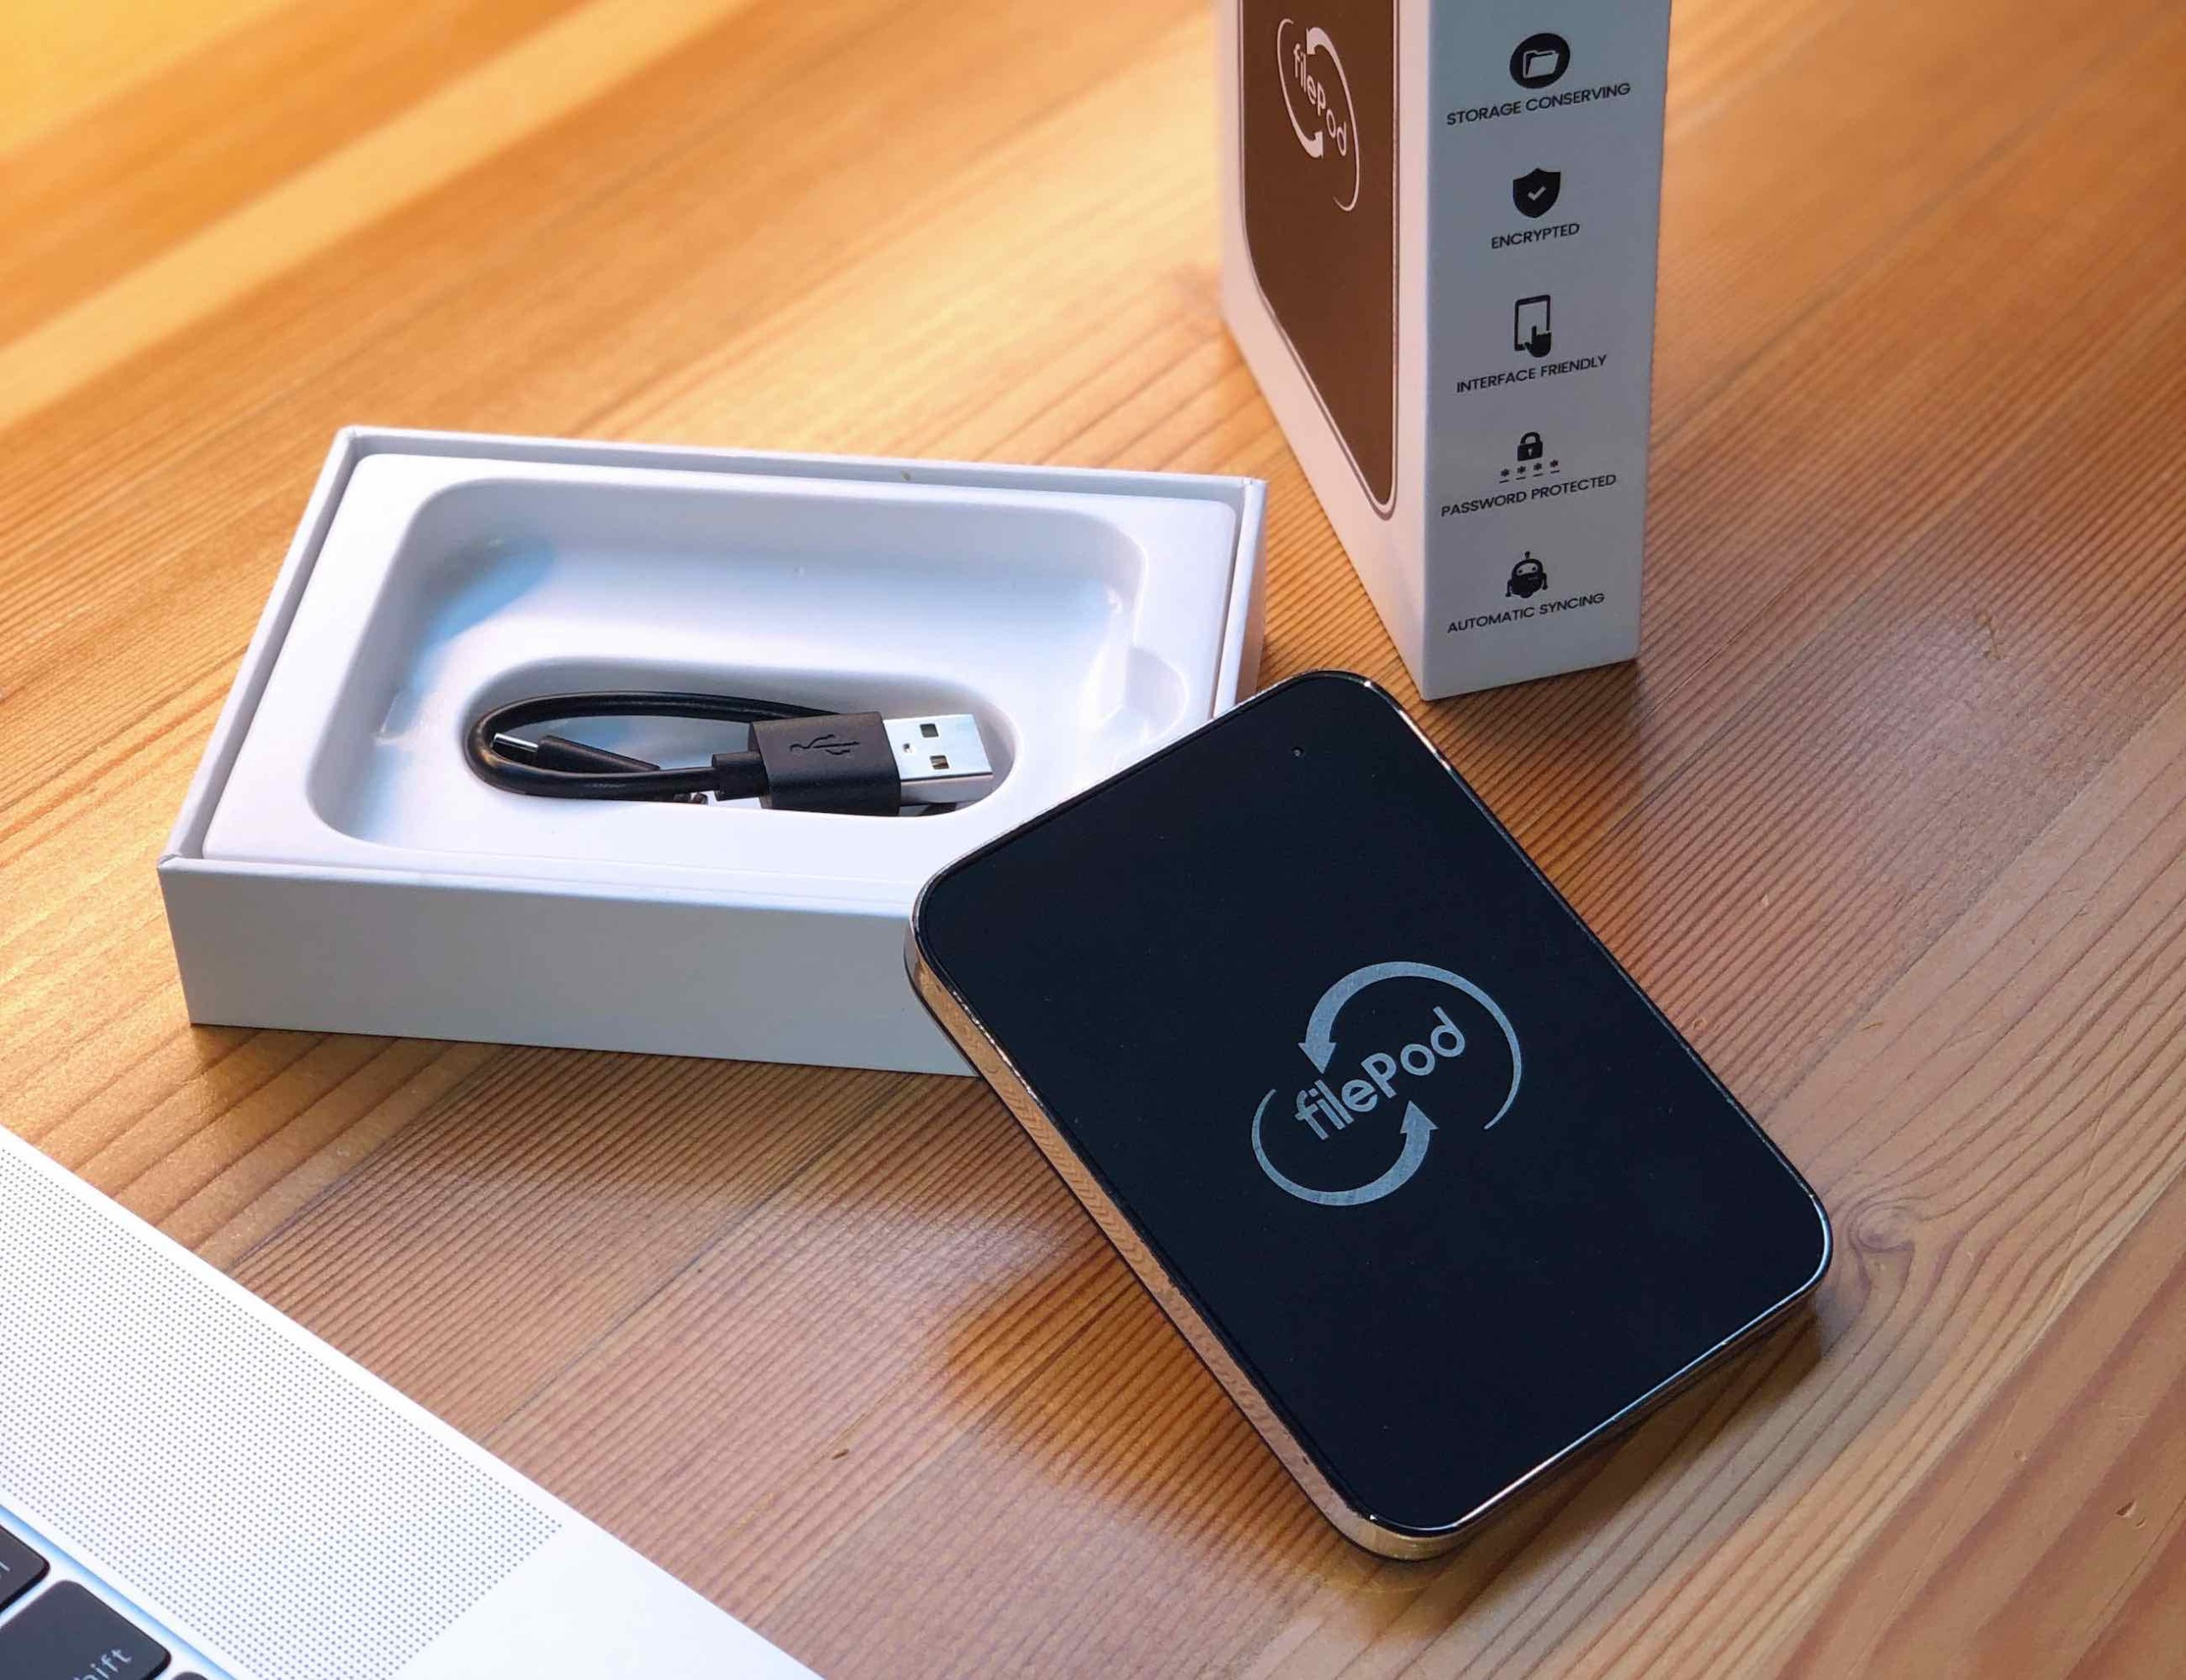 filePod Compact Automatic File Storage Device gives you full access even offline